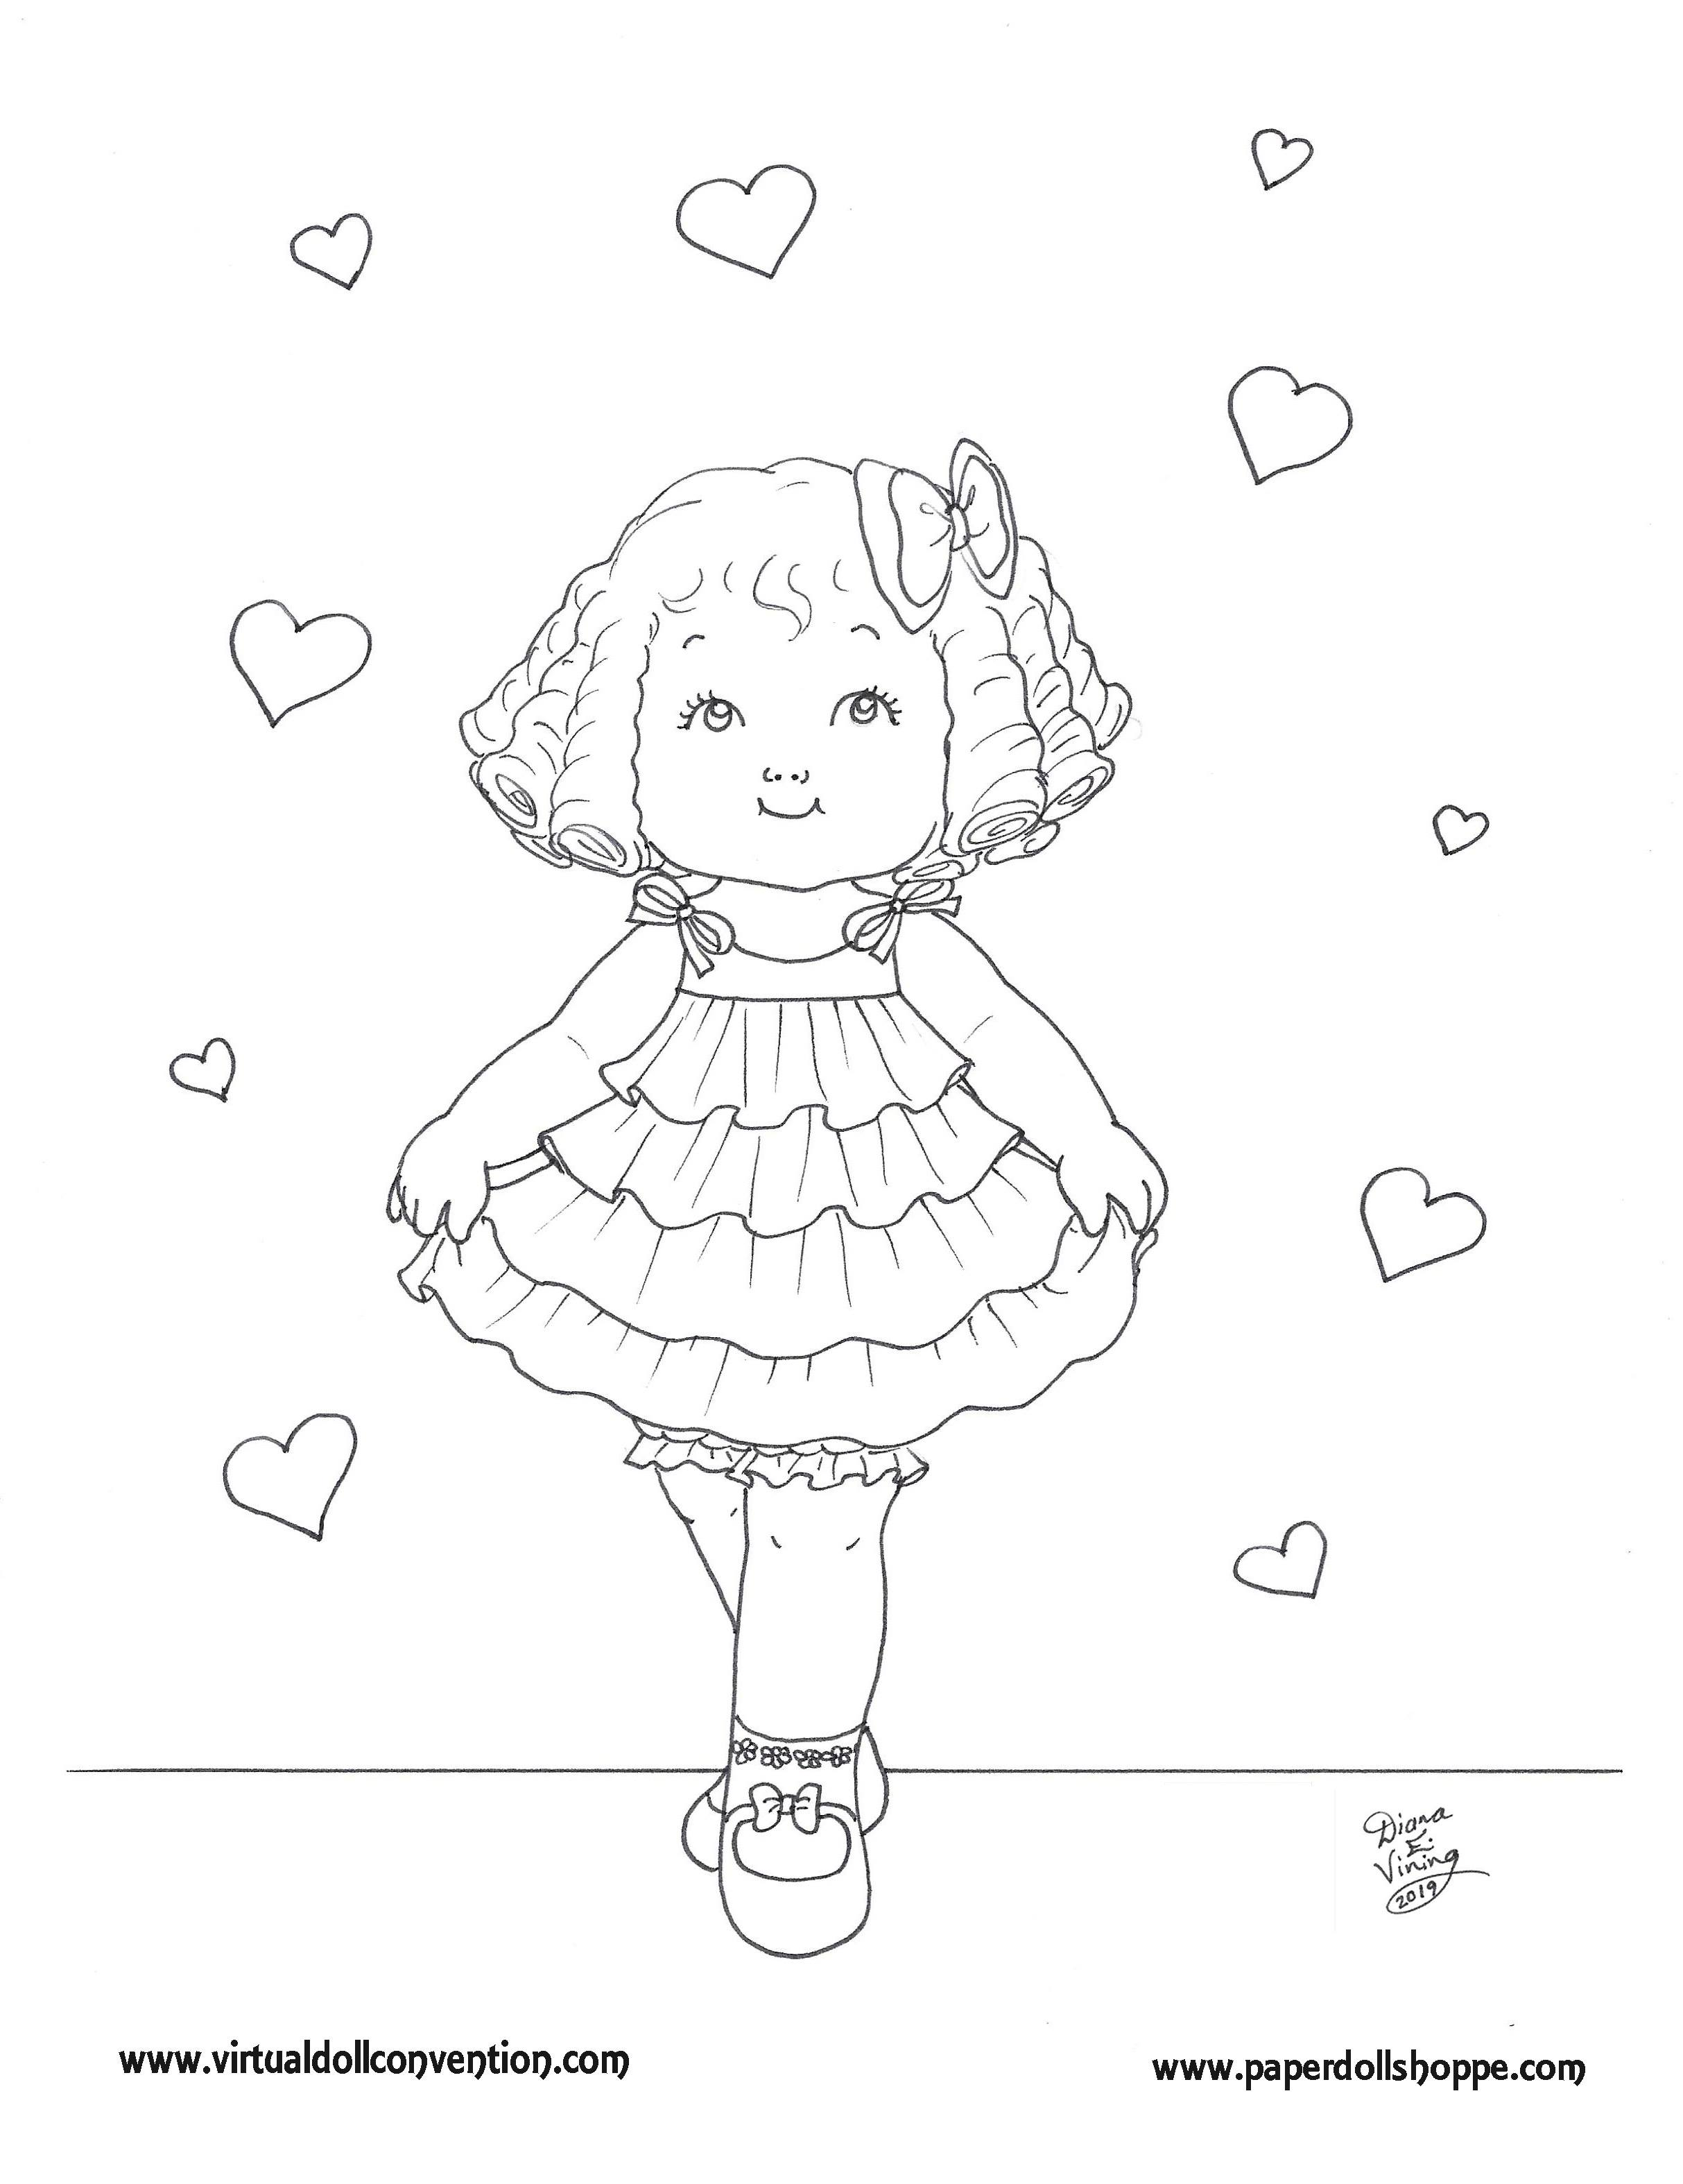 Dolly Dingle Rainbow Dress Coloring Page.jpg